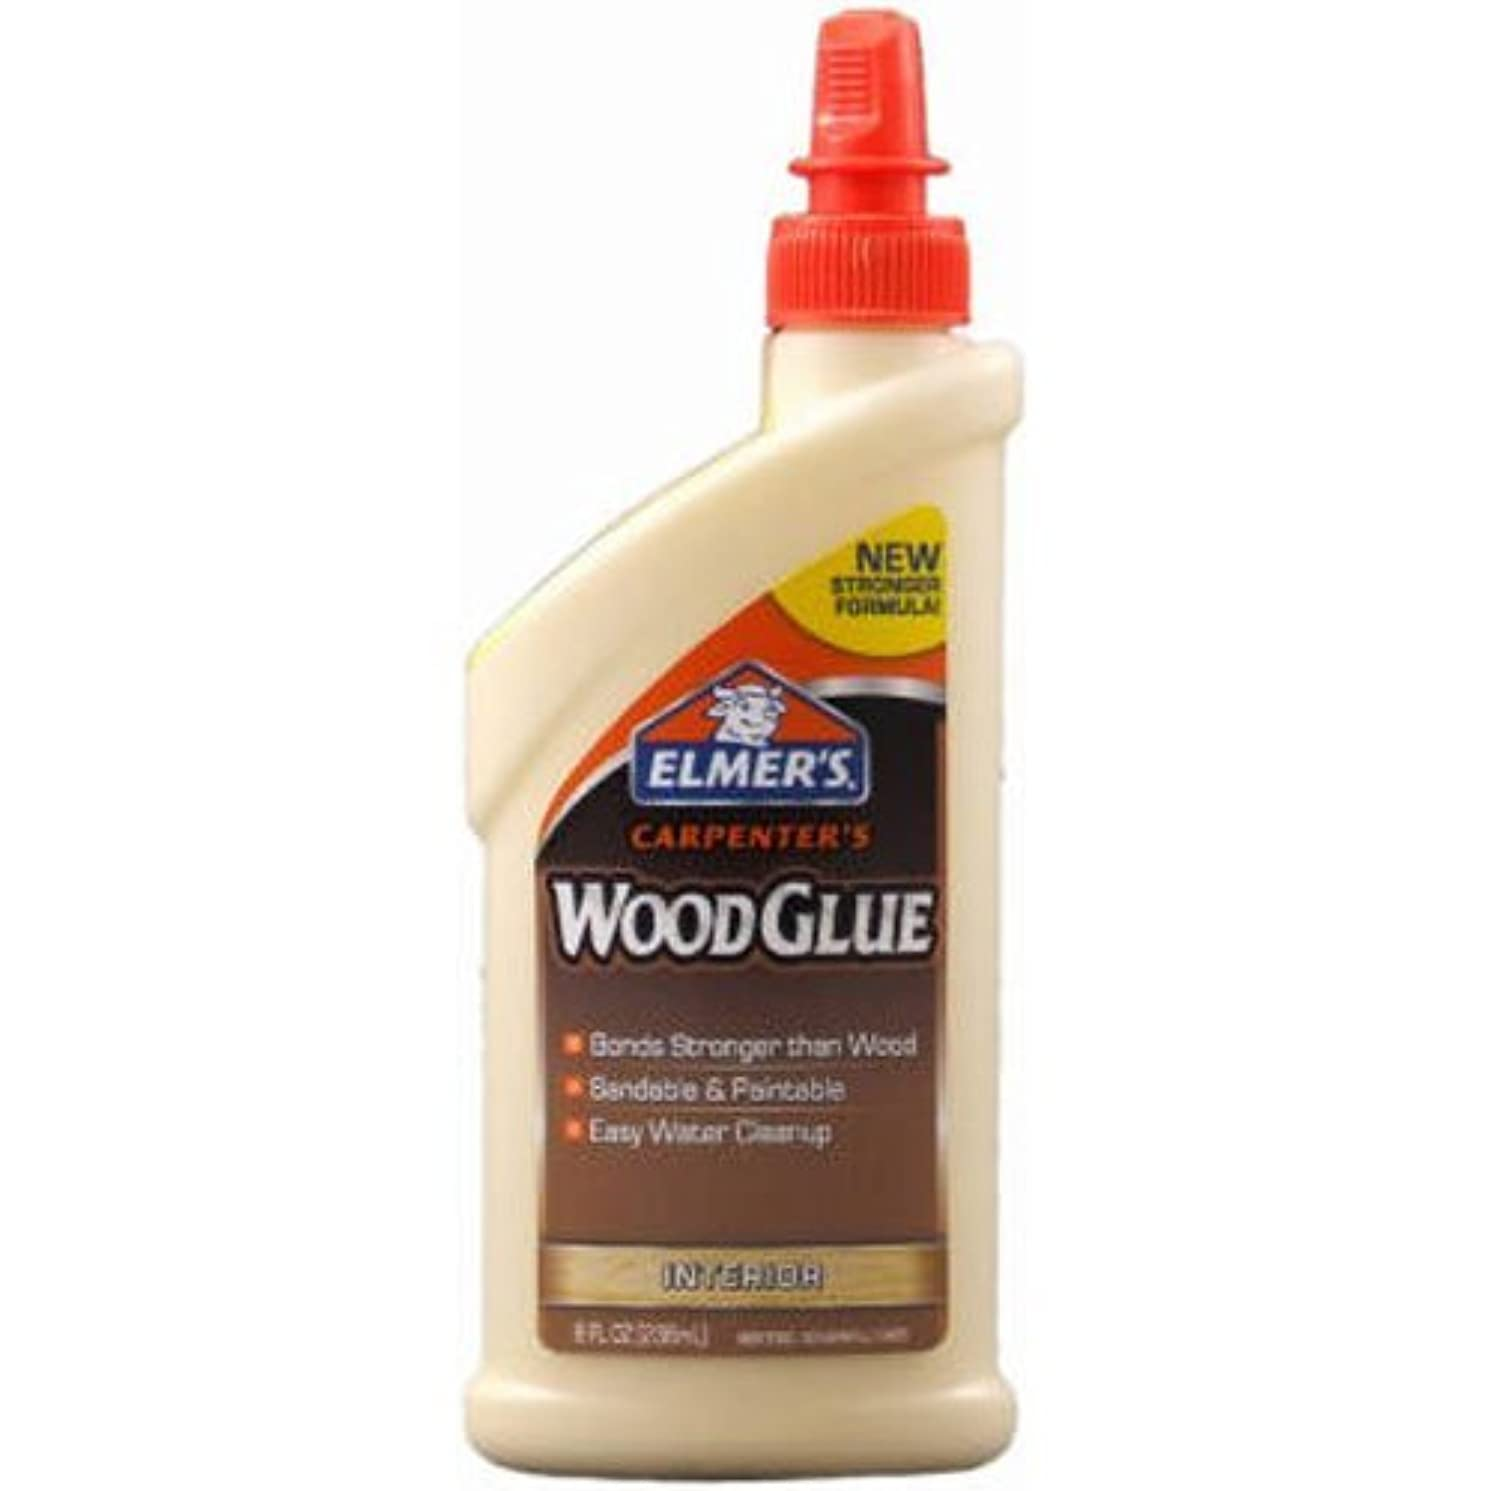 Elmer's E7010 Carpenter's Wood Glue, Interior, 8 Ounces (2-Pack) ae599580384713